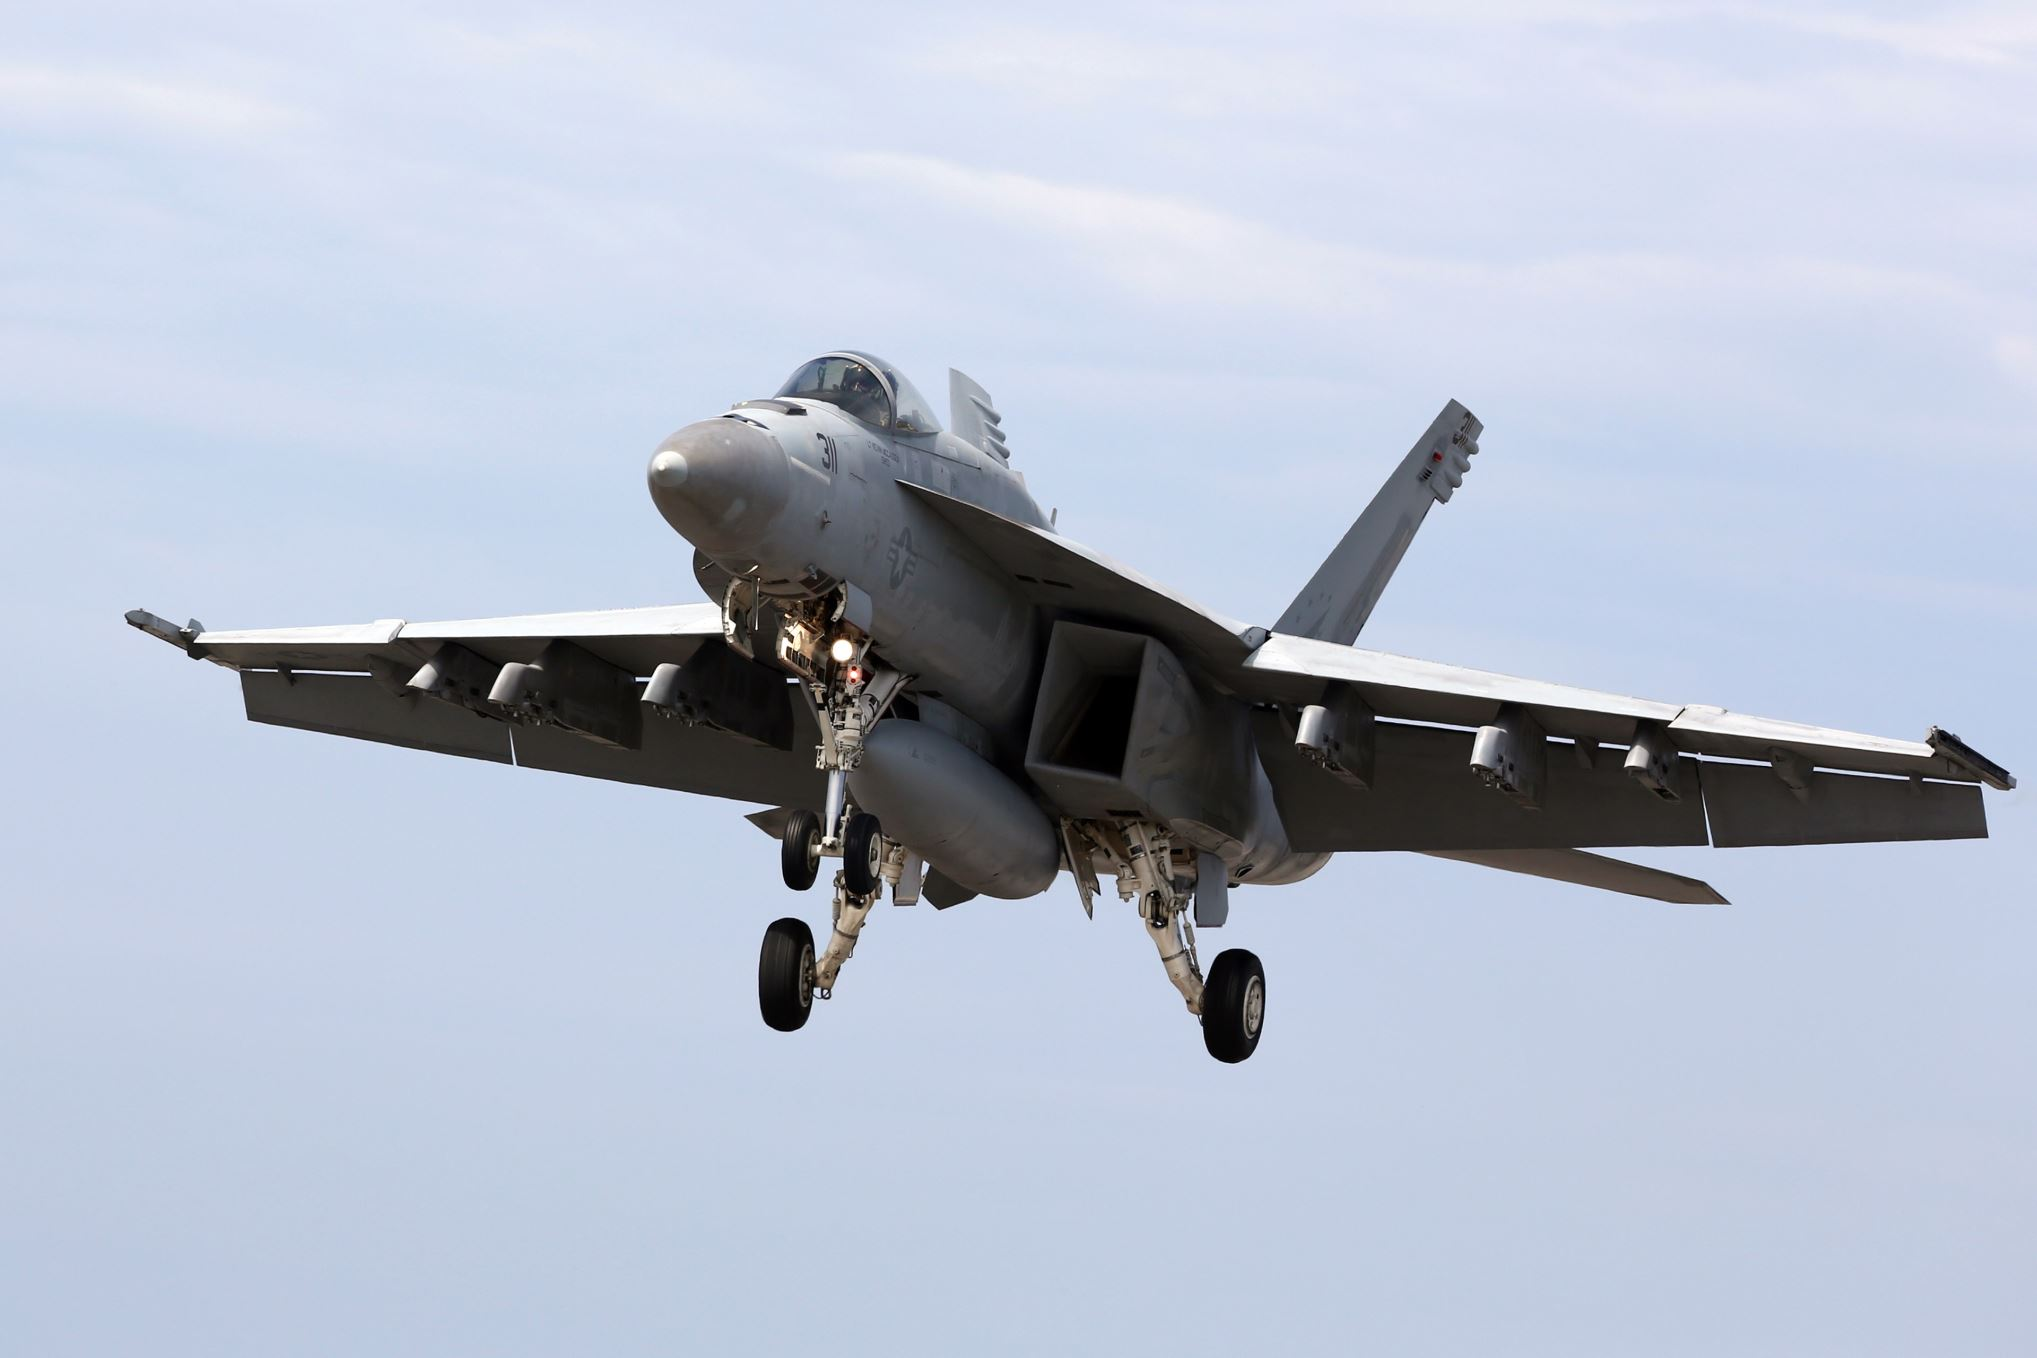 In this May 14, 2014 file photo, a U.S. Navy F/A-18 Super Hornet lands during the Field Carrier Landing Practice of the Carrier Air Wing 5 of U.S. Naval Air Facility Atsugi on May 14, 2014 in Iwojima, Tokyo, Japan.